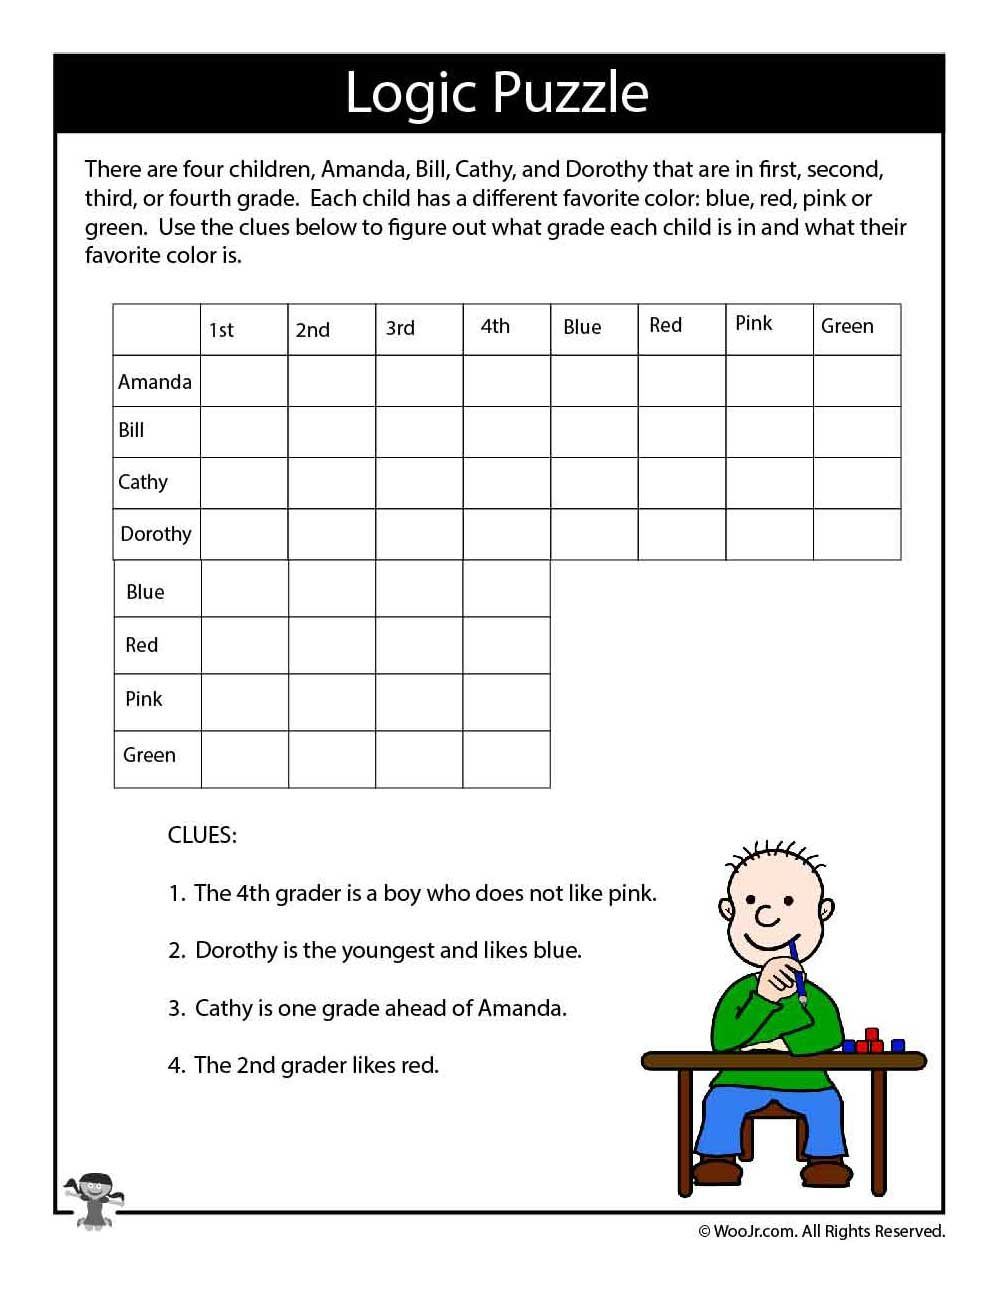 medium resolution of Hard Logic Puzzle for Kids   Woo! Jr. Kids Activities   Math logic puzzles